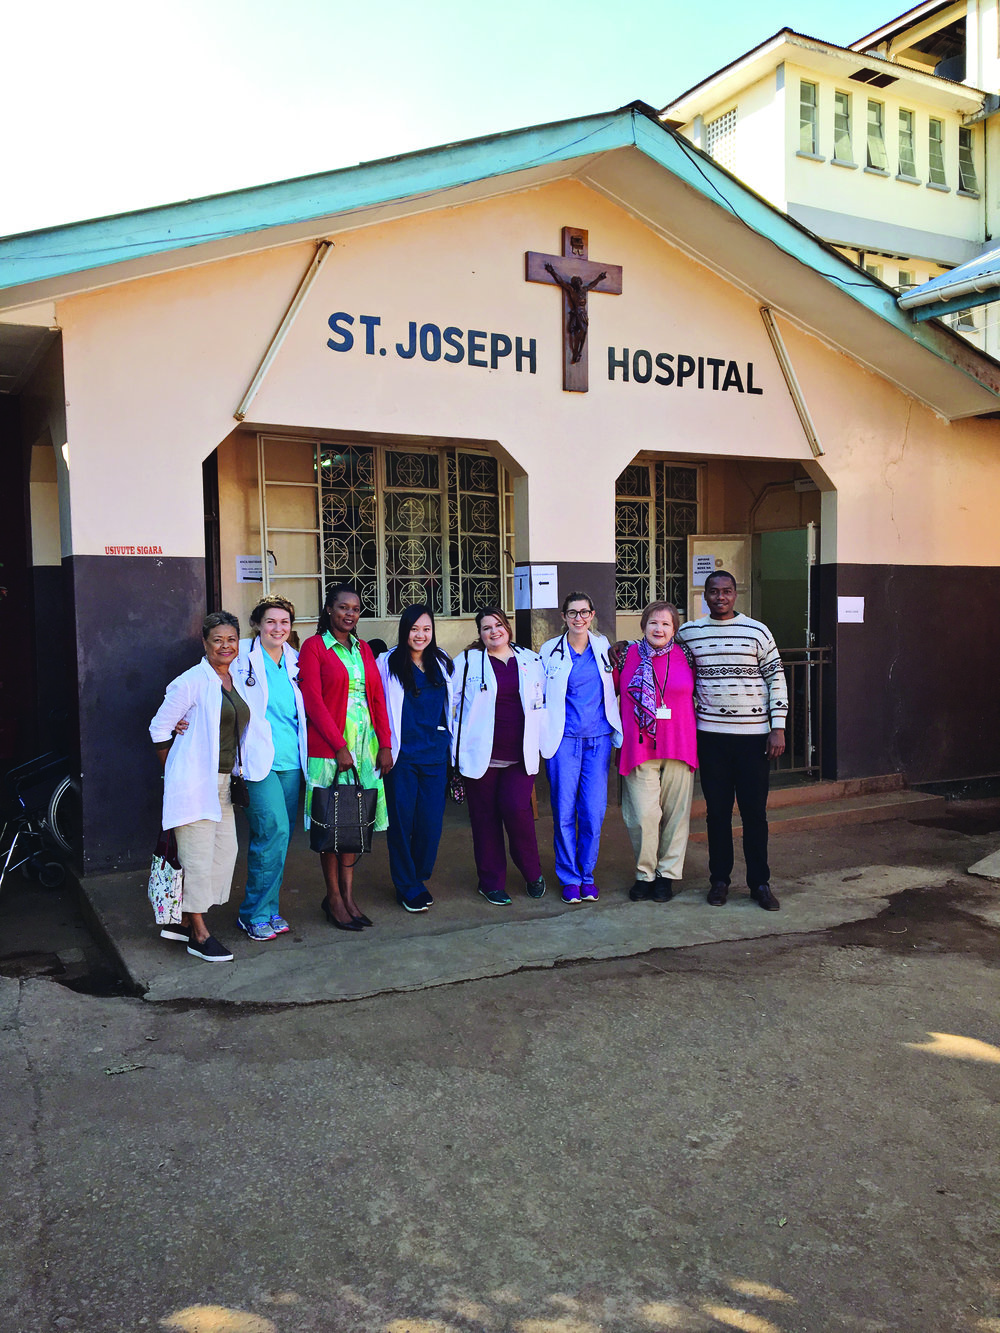 The WVSOM Team with Dr Geophrey Mboye at St. Joseph Hospital